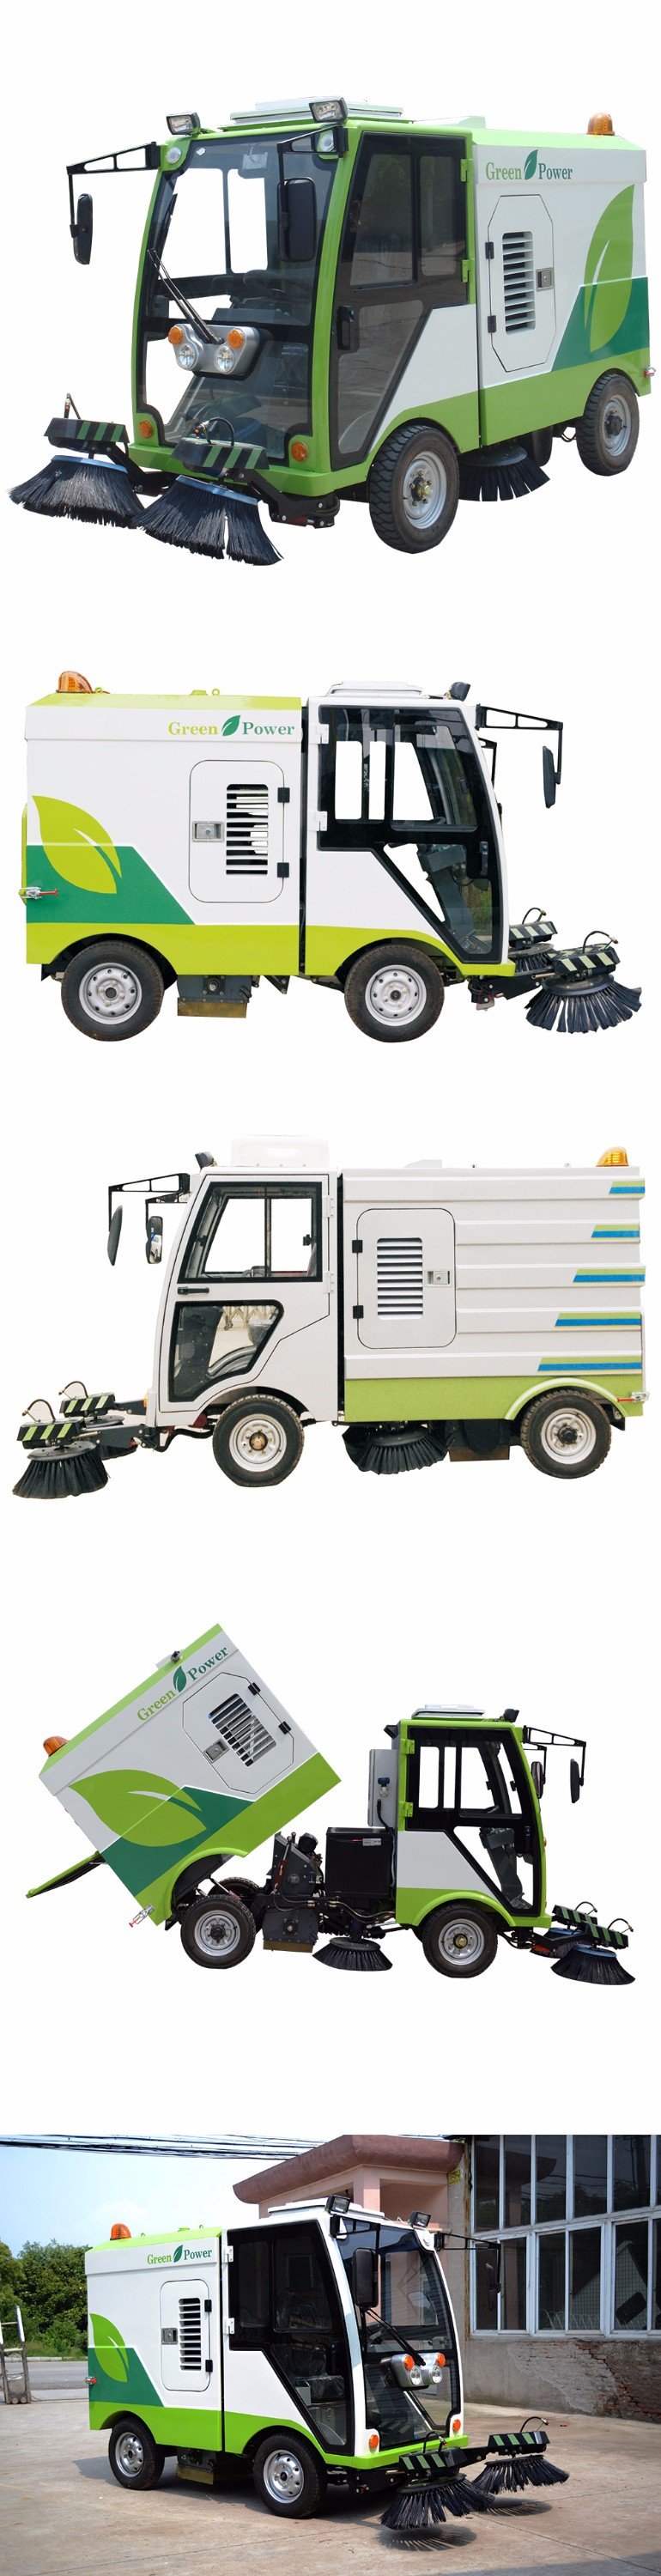 DYNABike powerful economic green Electric Road Sweeper for sale